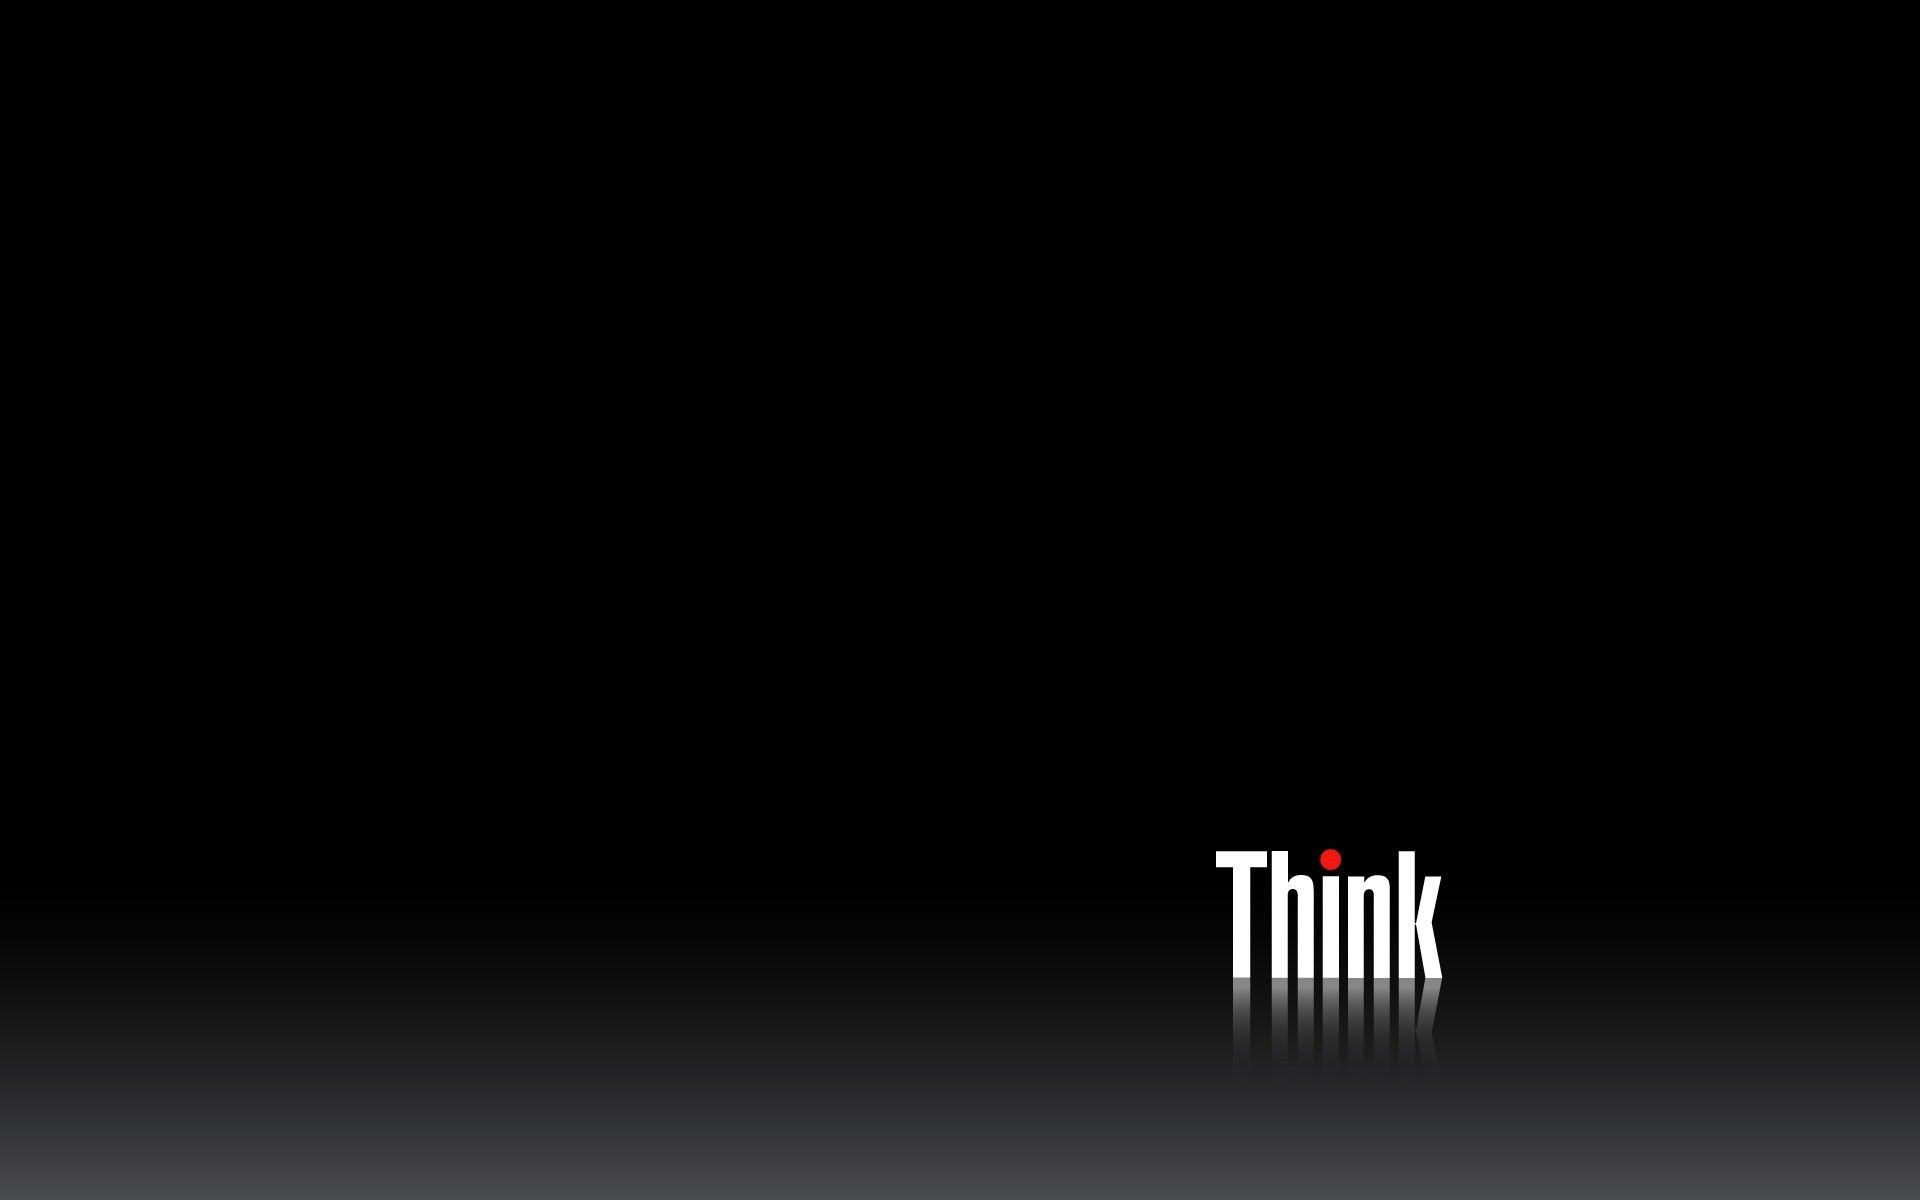 1920x1200 Lenovo Think Wallpapers Back Here Is The Black Lenovo Think Wallpaper Lenovo Wallpapers Black Wallpaper Desktop Wallpaper